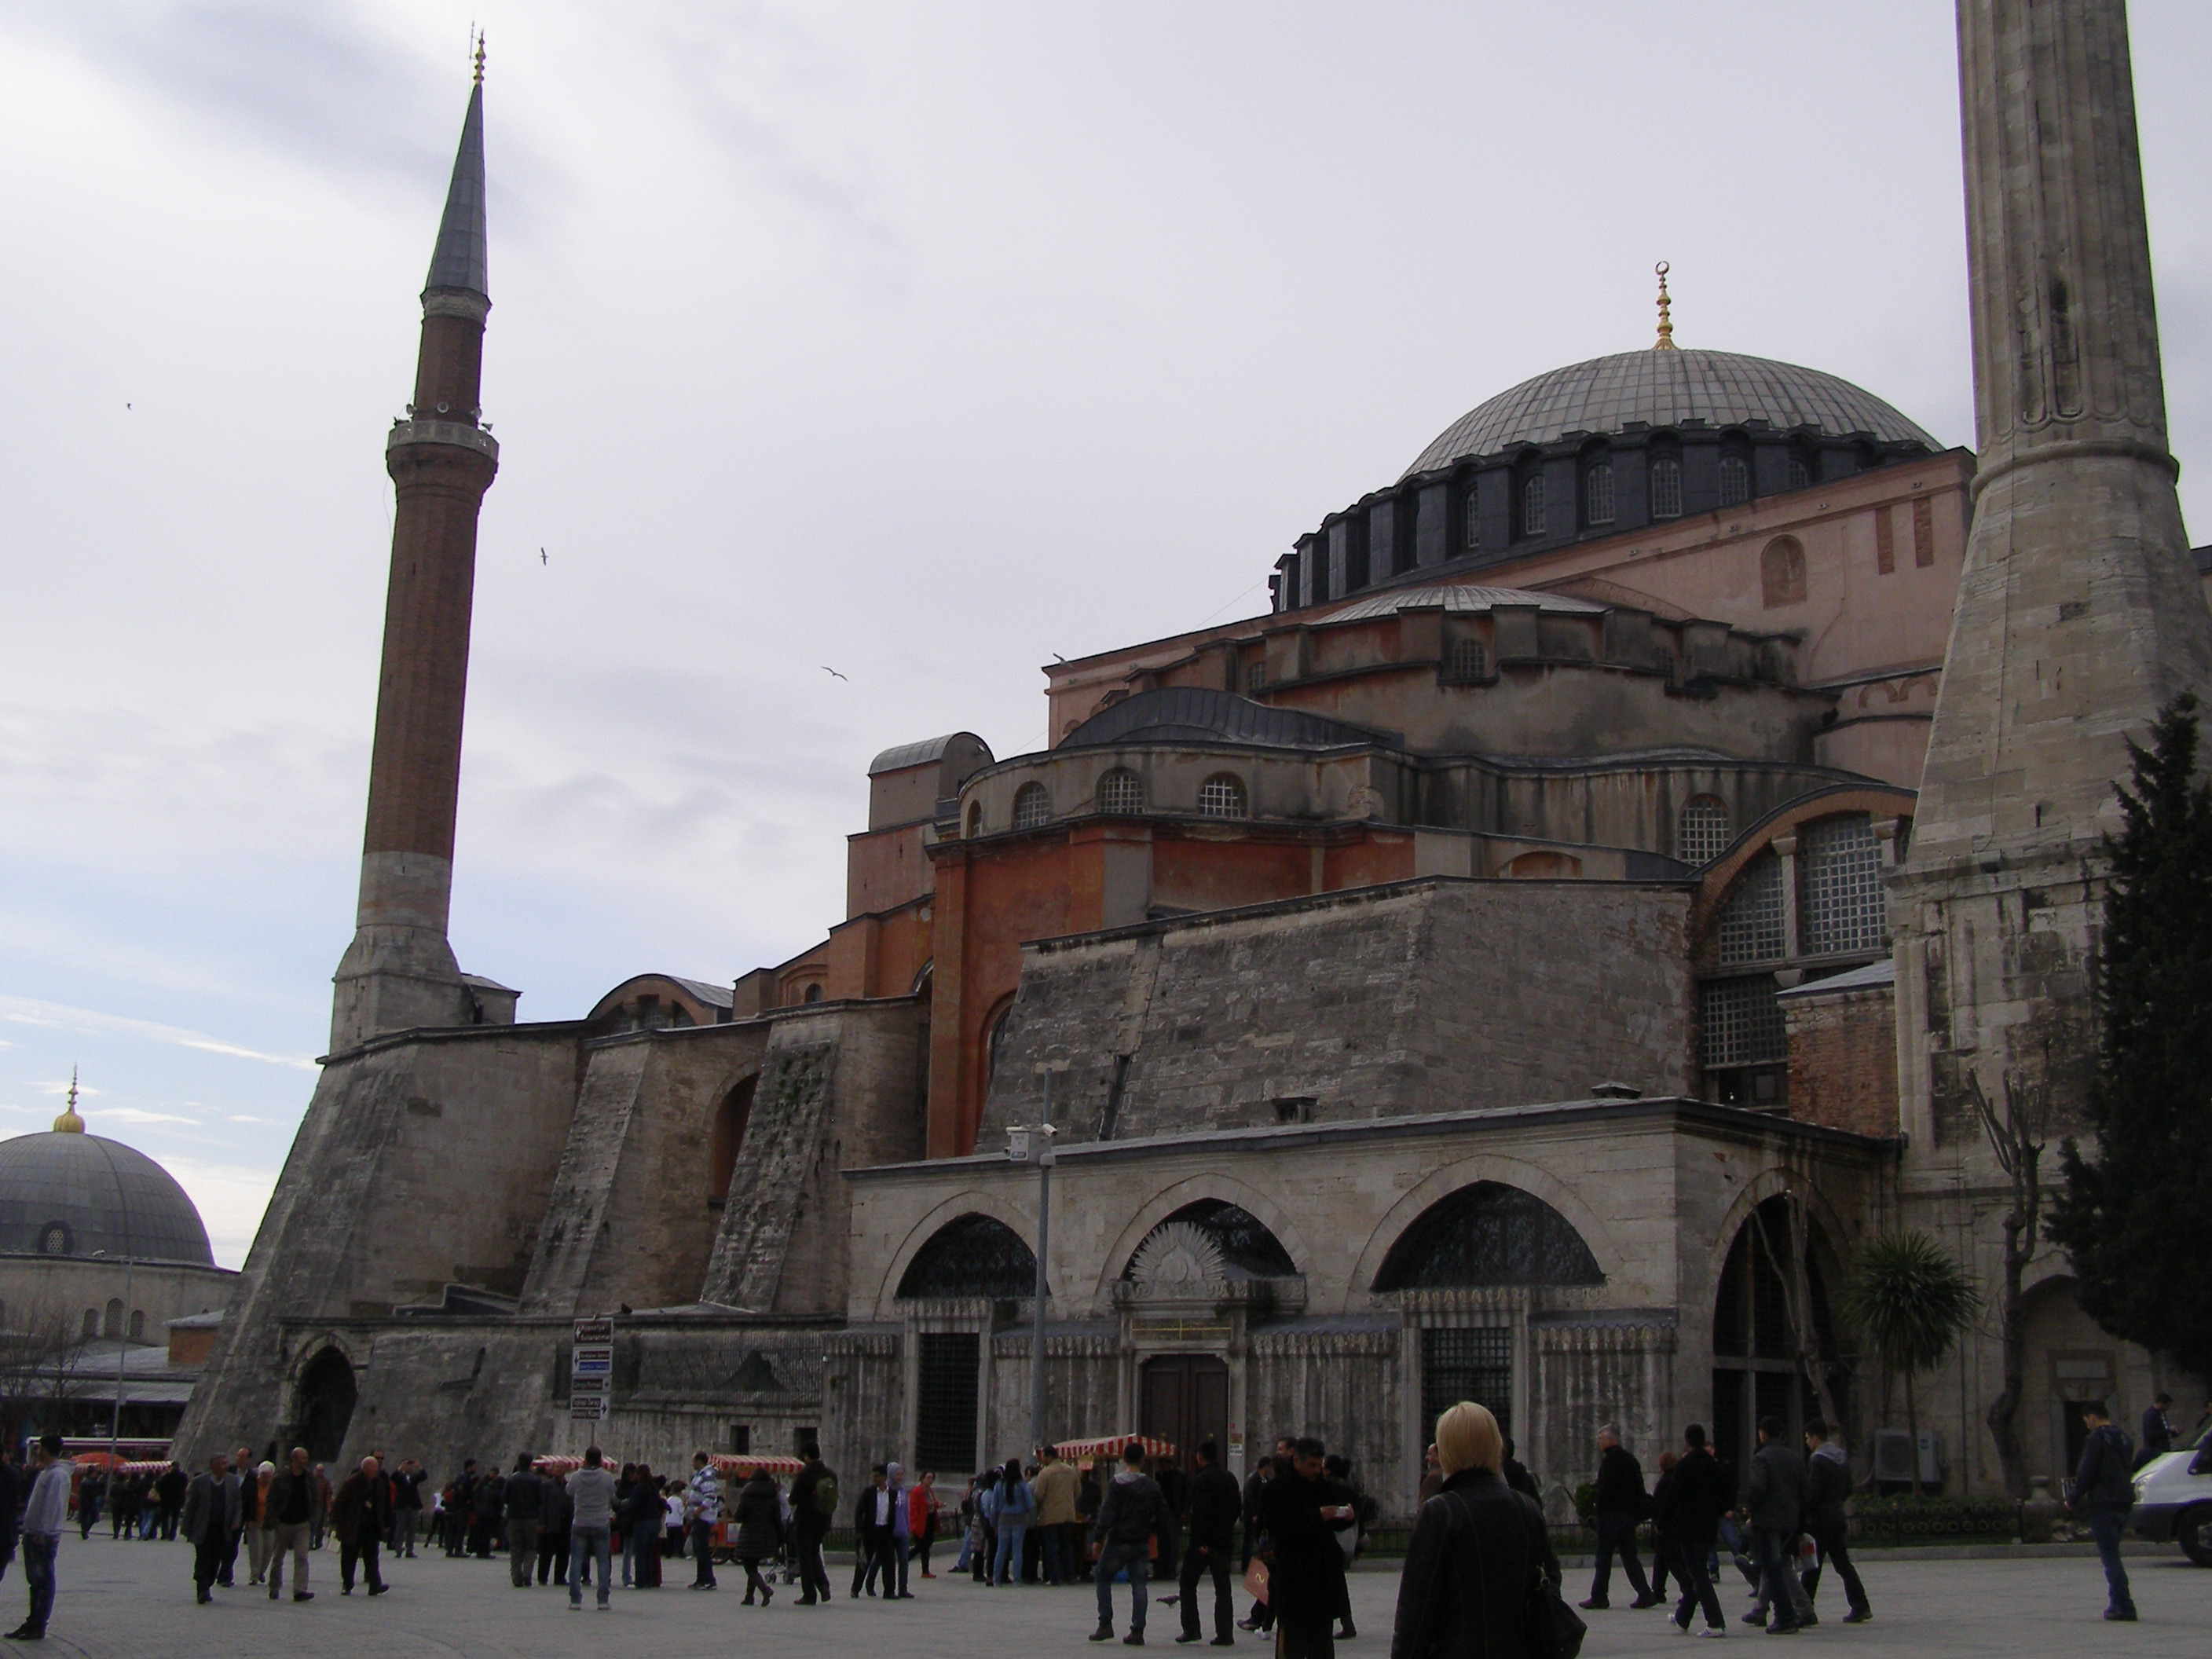 Hagia Sophia, the eighth wonder of the world is a World Heritage site since 1985  It was built in the period (527-565) under the order of Emperor Justinianos.  It was used as a church for 916 years till conquest of Istanbul by Ottomans. In this period Hagia Sophia was converted into the mosque and was used as a mosque for 482 years. In 1935 in the period of Turkish Repuplic it was converted into a museum in 1935.  Hagia Sophia is open for visit every day except Mondays. Winter visiting hours are 09.00am to 17.00pm Summer visiting hours are 09.00am and 19.00pm